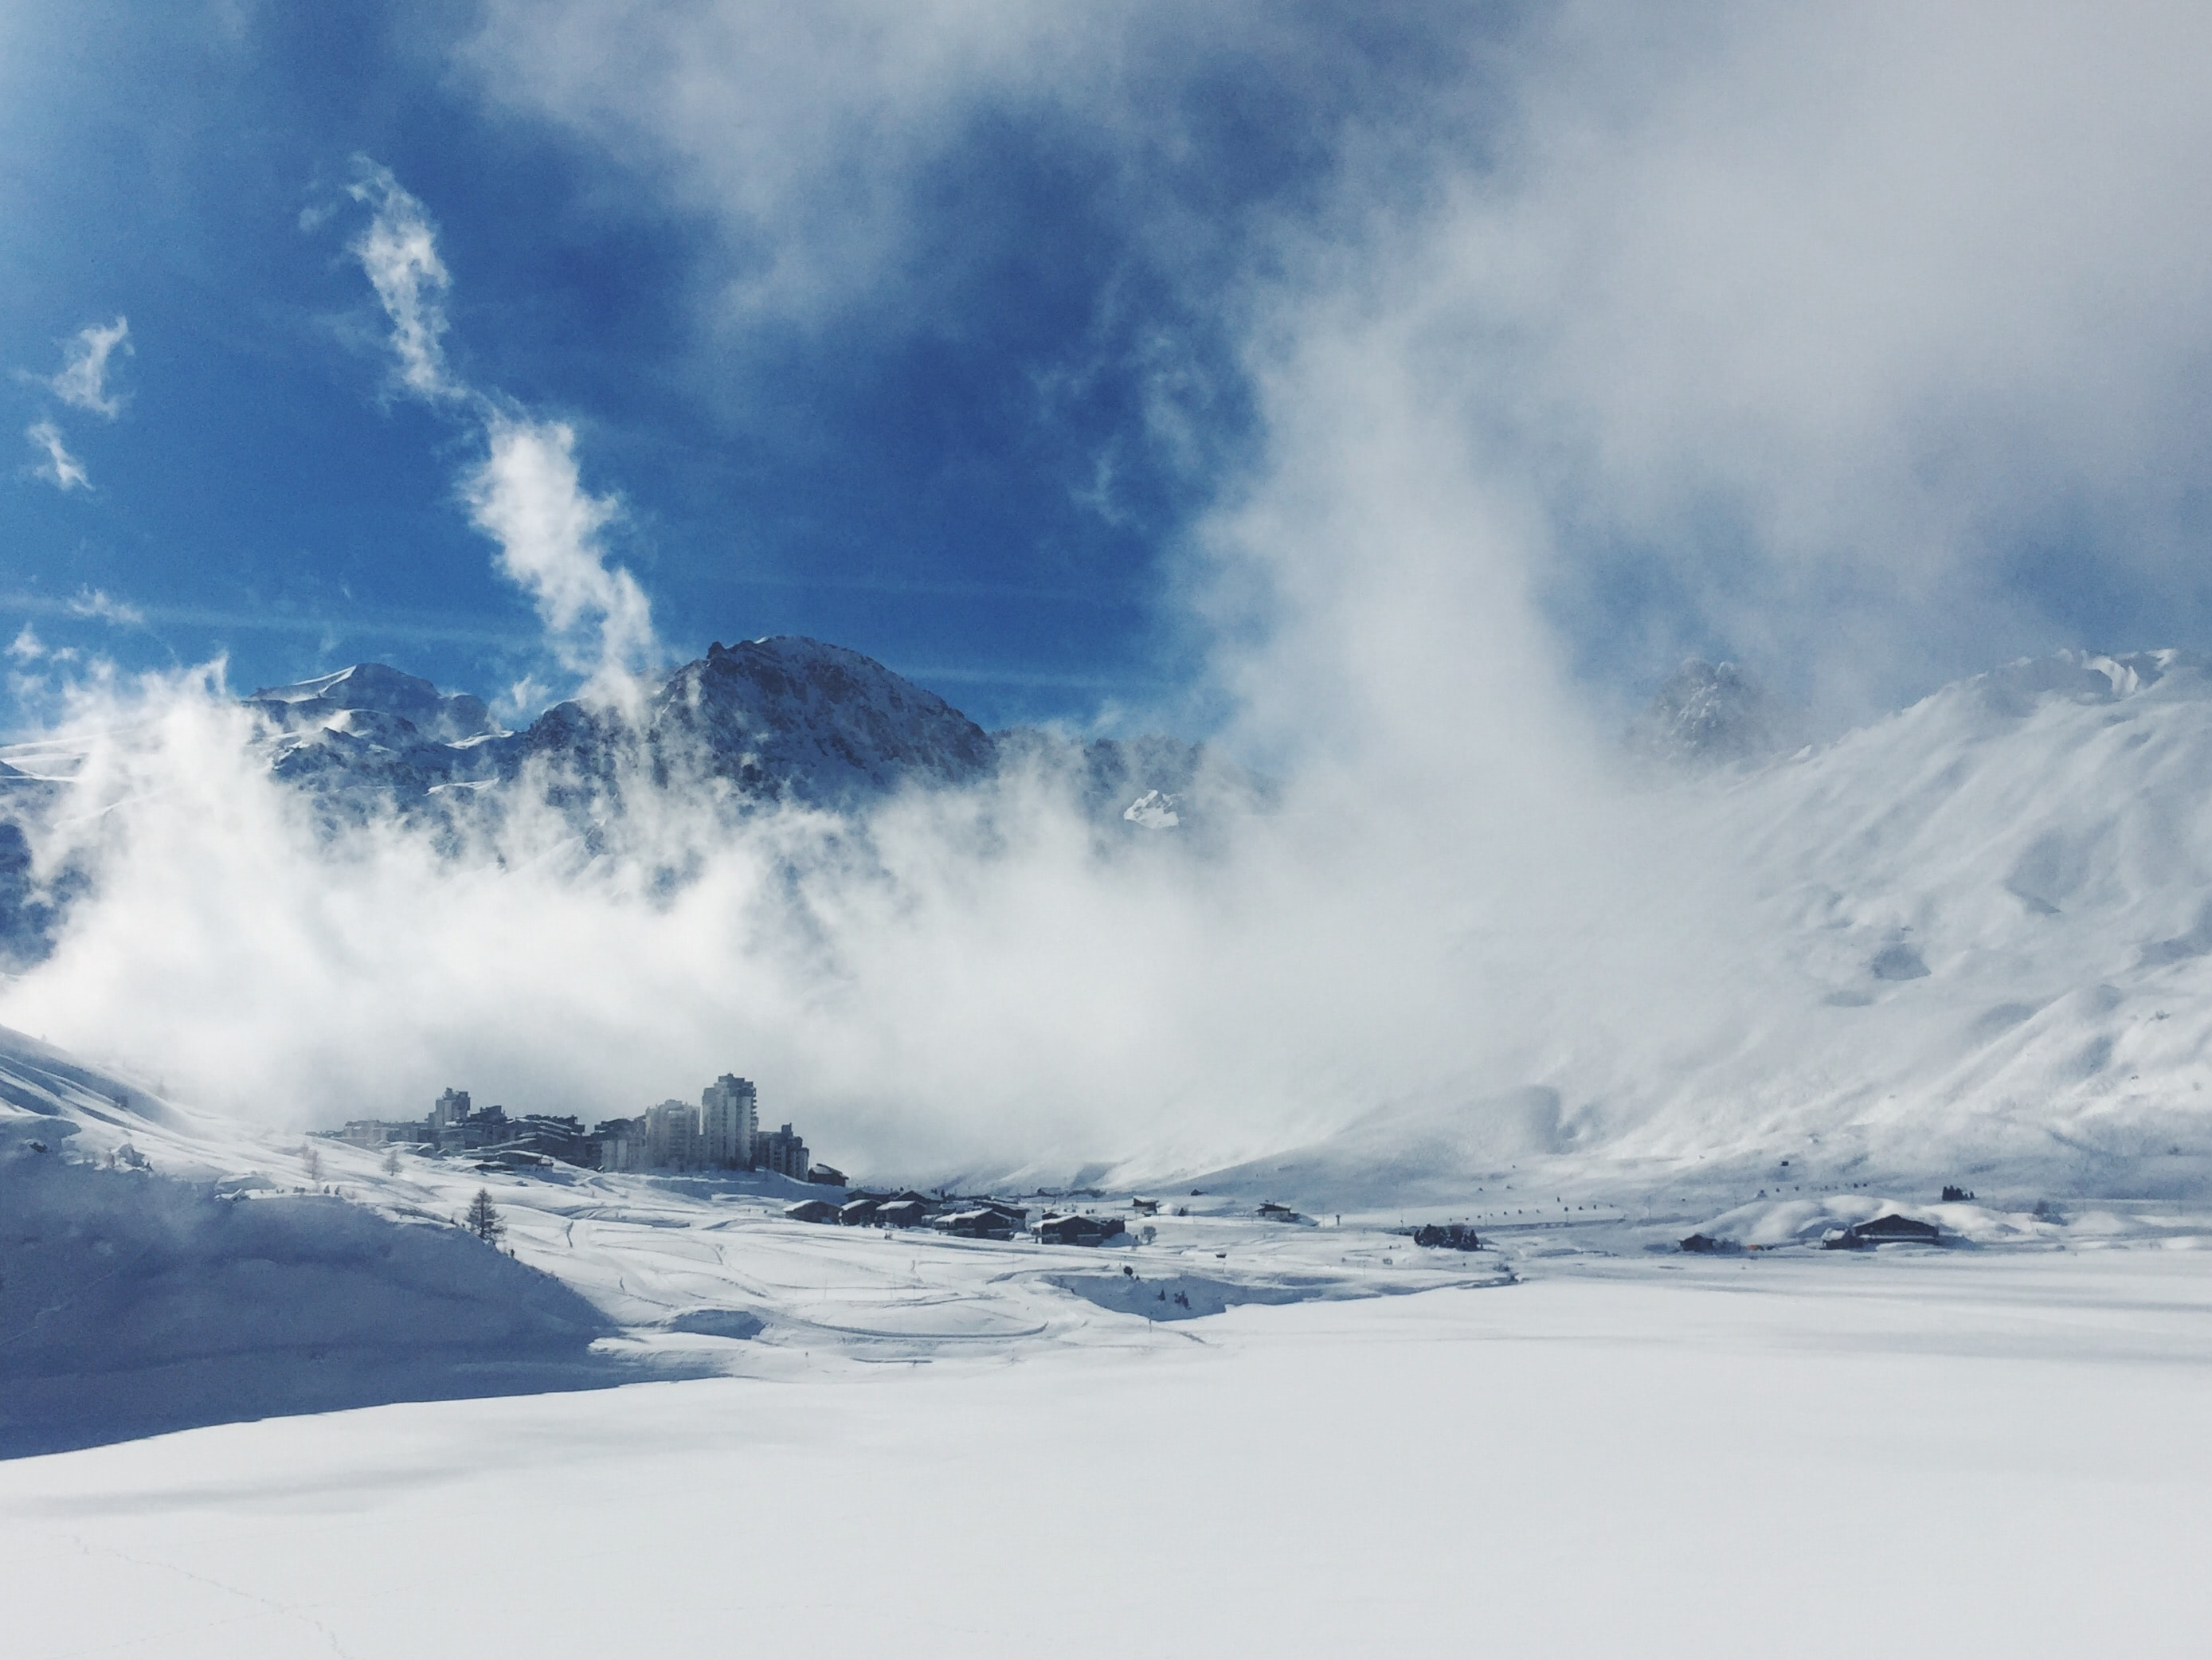 snow-covered mountain under blue cloudy sky